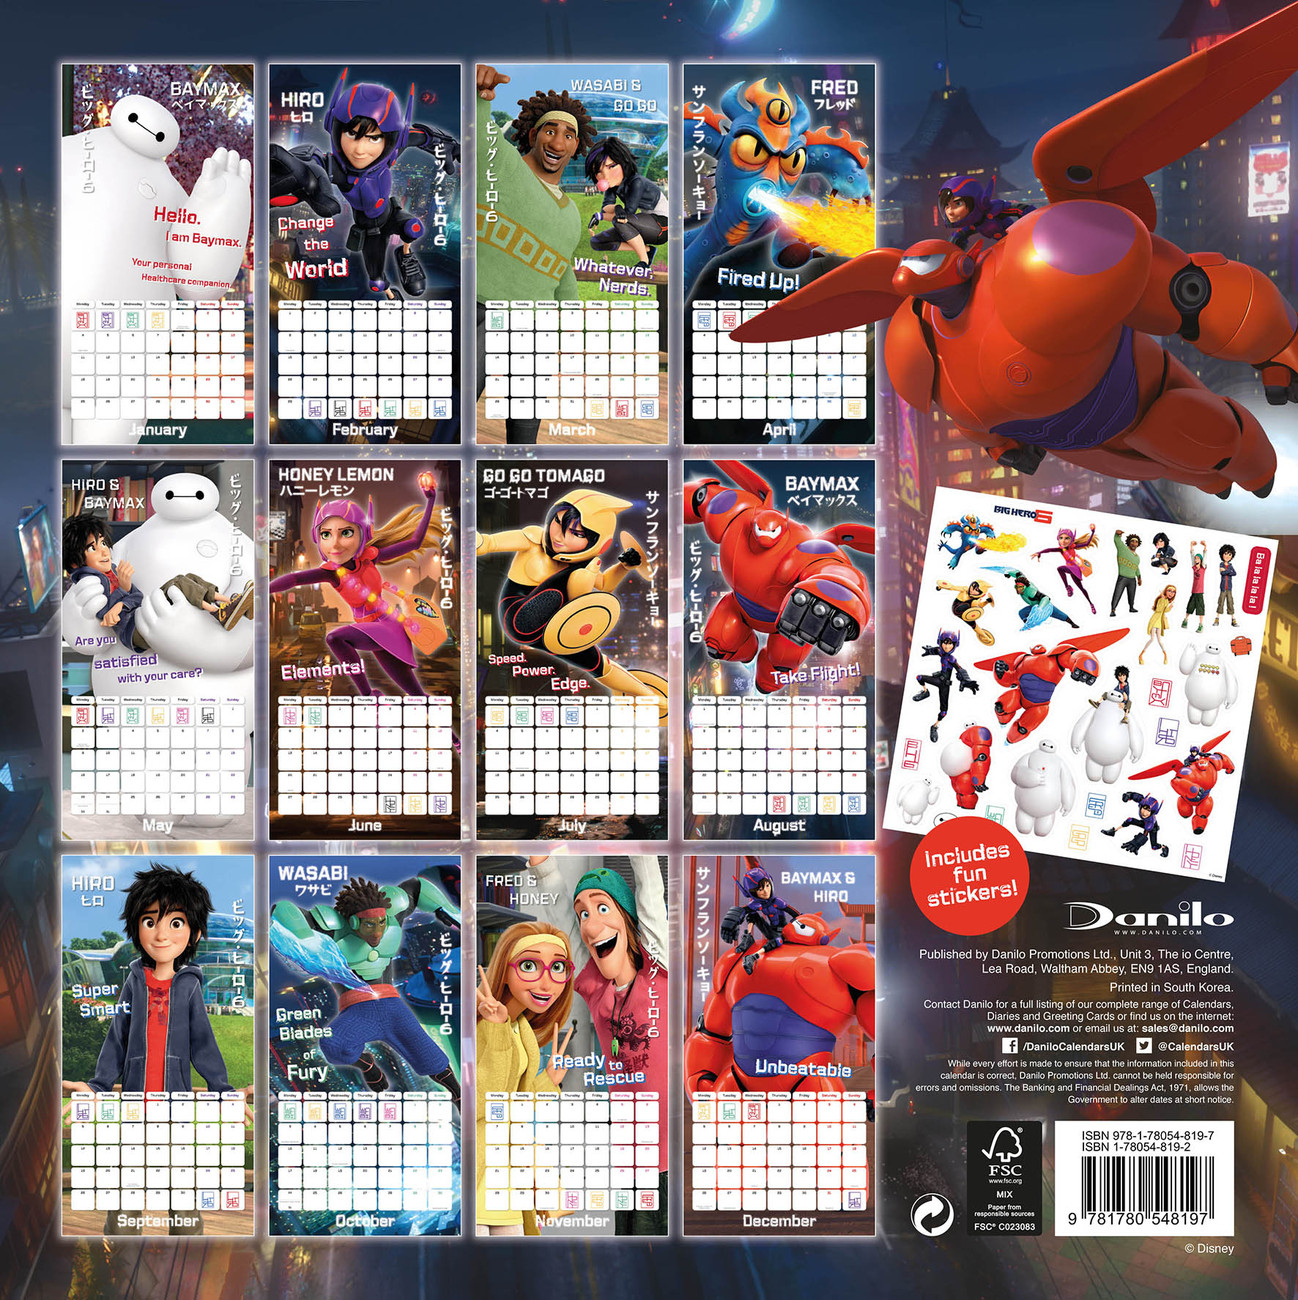 Wallpaper Calendar Superhero : Big hero calendars on europosters